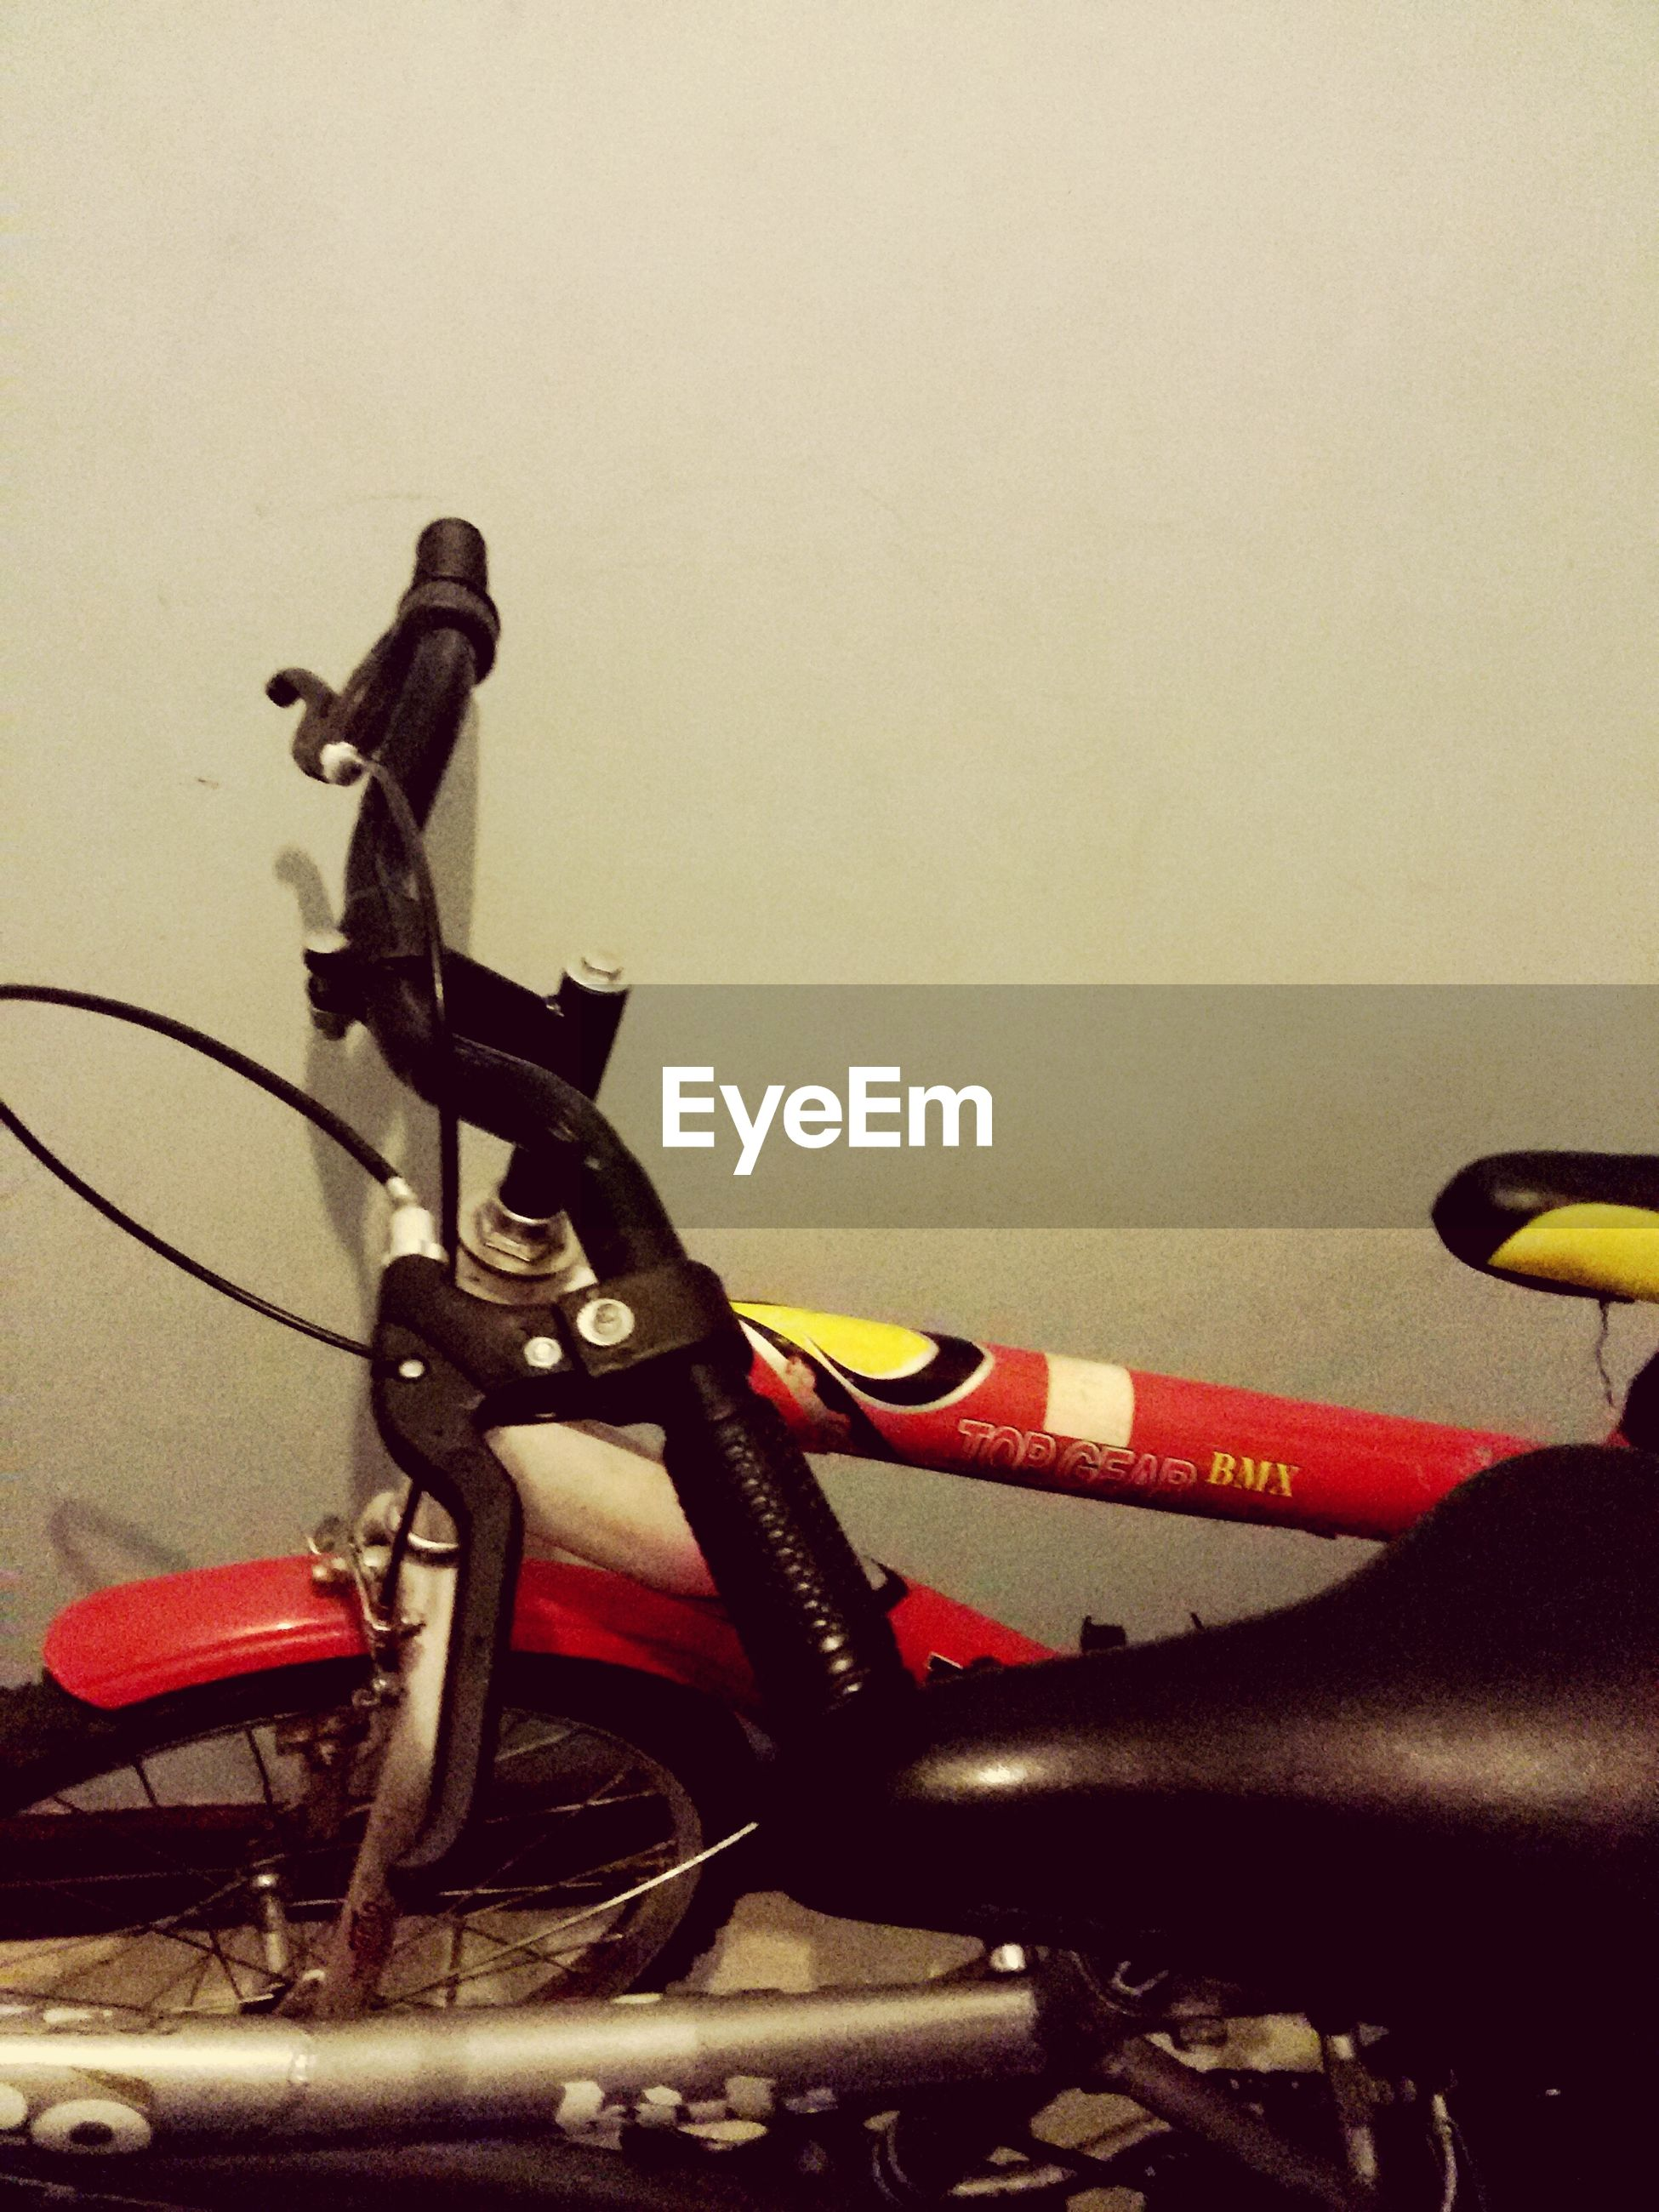 bicycle, indoors, men, lifestyles, part of, transportation, leisure activity, person, copy space, cropped, skill, holding, technology, land vehicle, mode of transport, high angle view, unrecognizable person